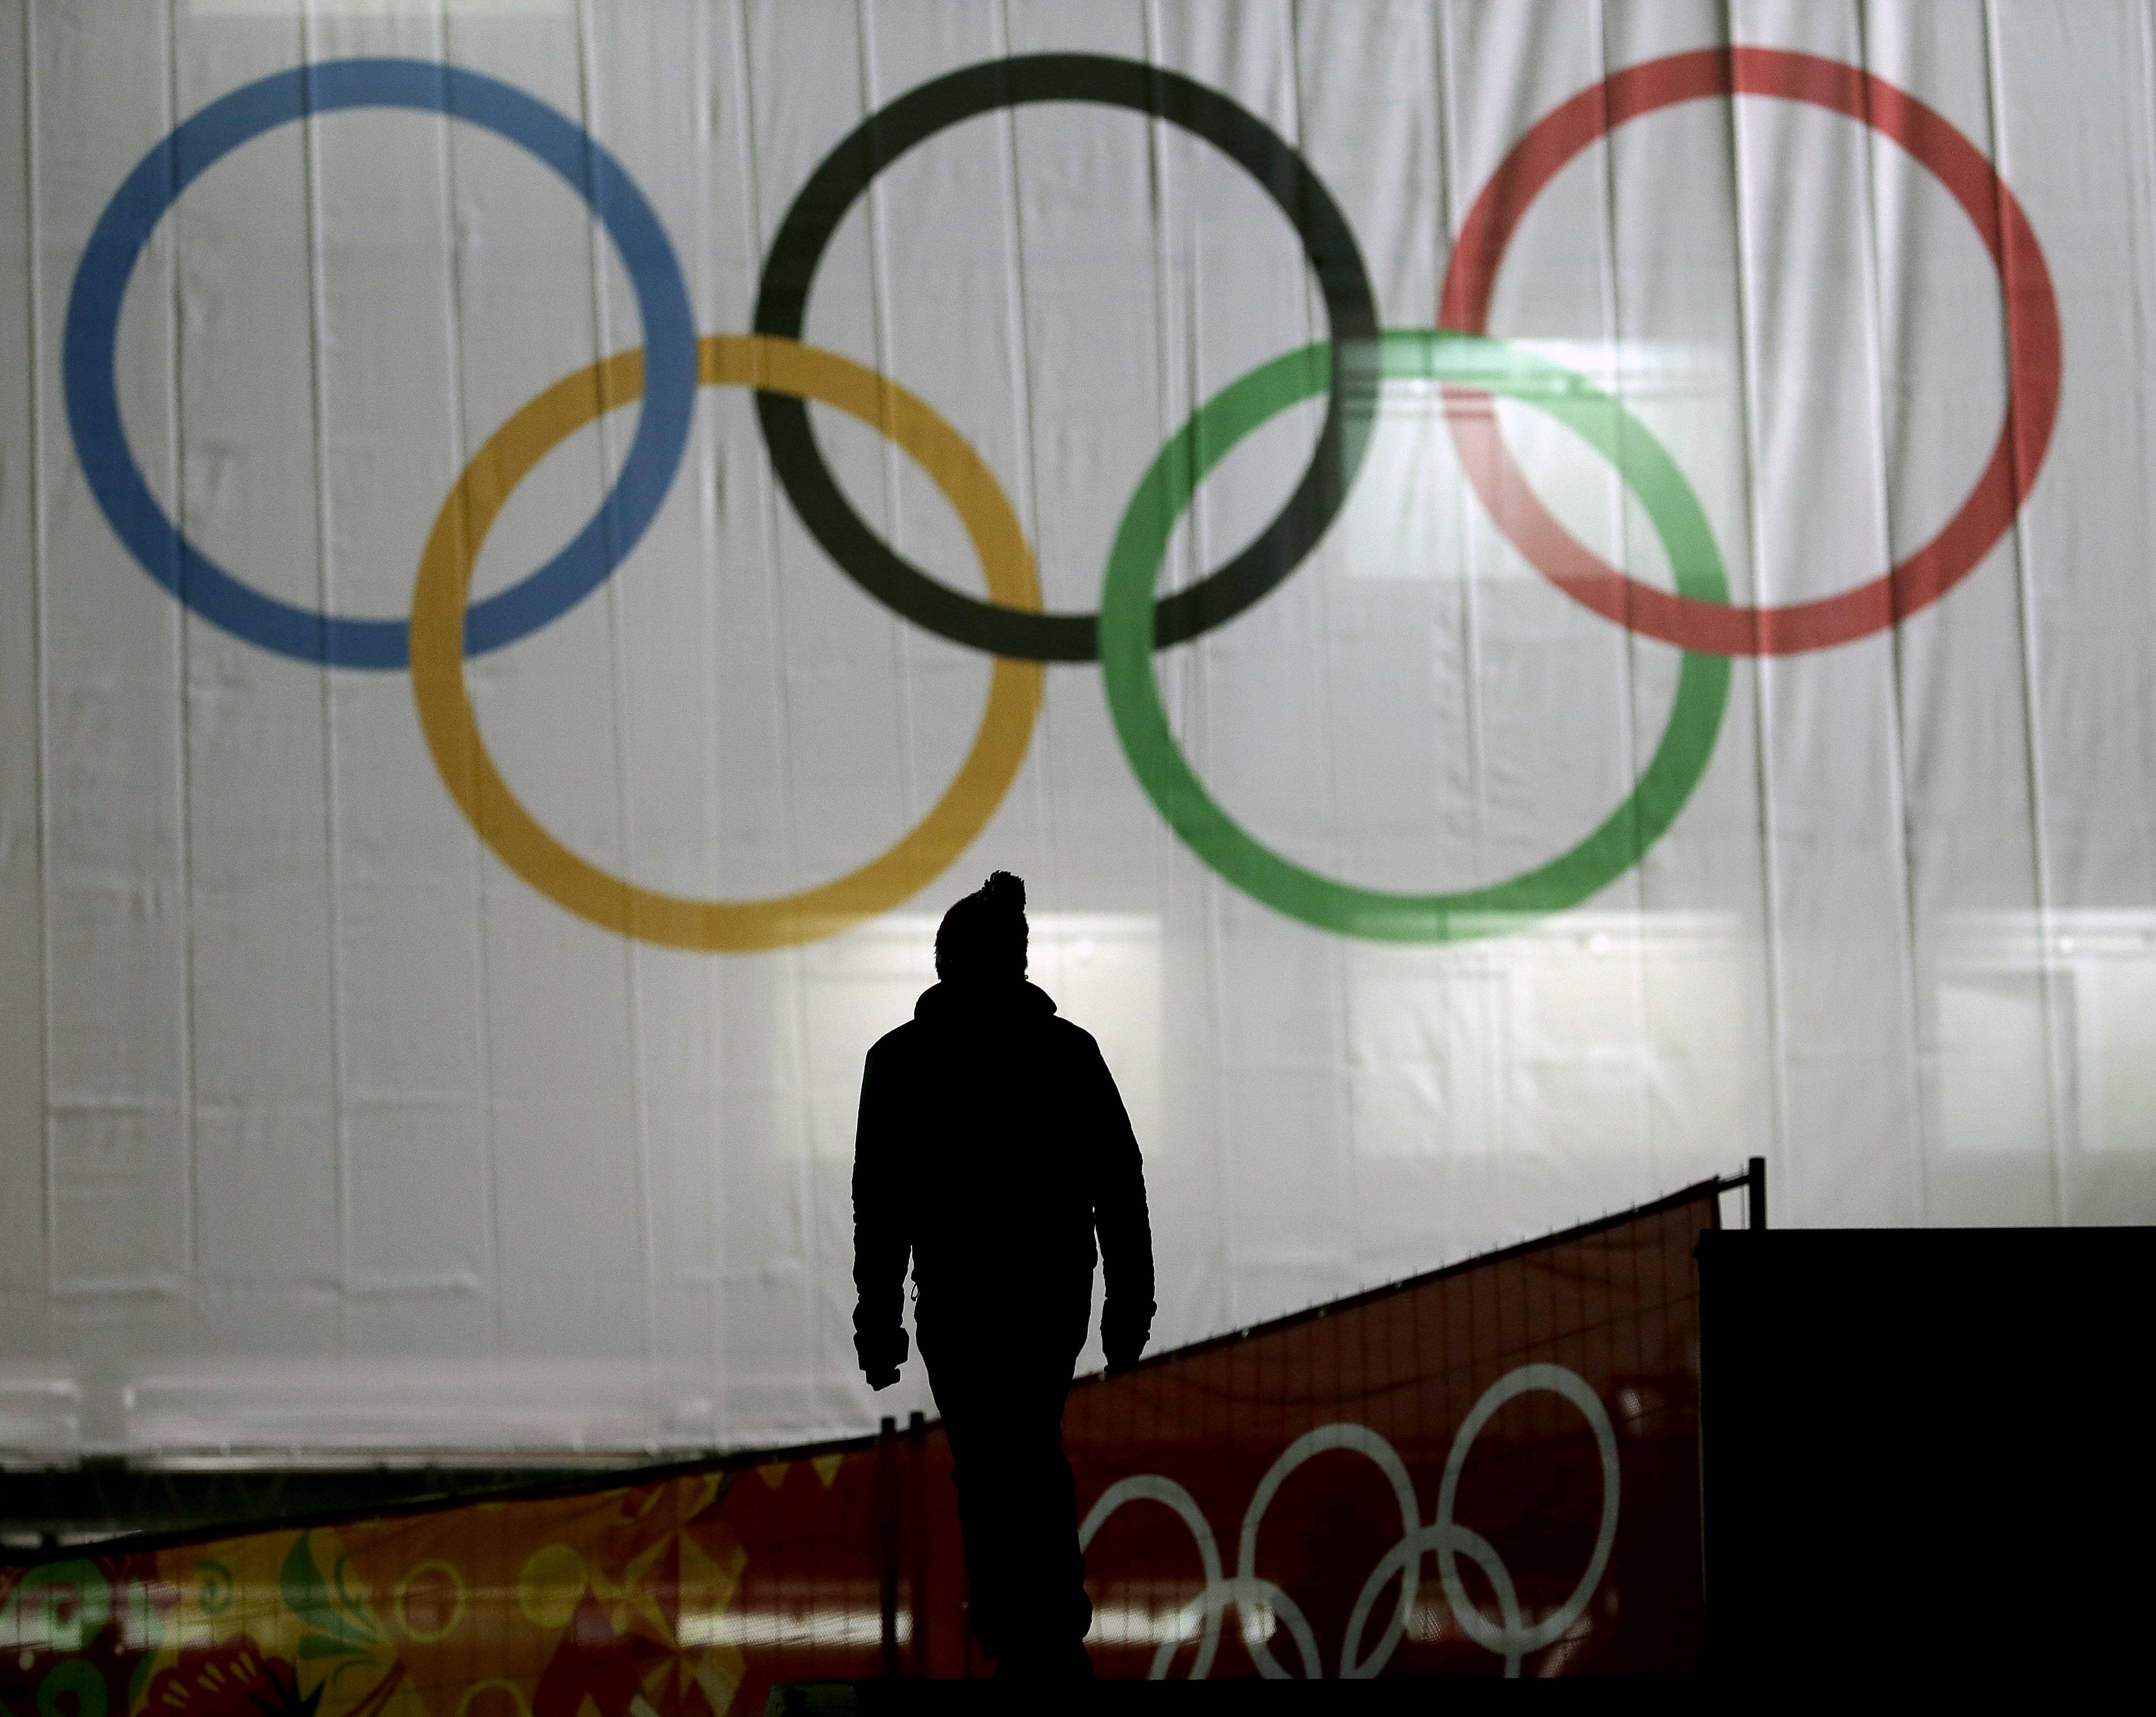 A man is silhouetted against the Olympic Rings as he walks to the venue for the women's normal hill ski jumping final at the 2014 Winter Olympics on Tuesday in Krasnaya Polyana, Russia.